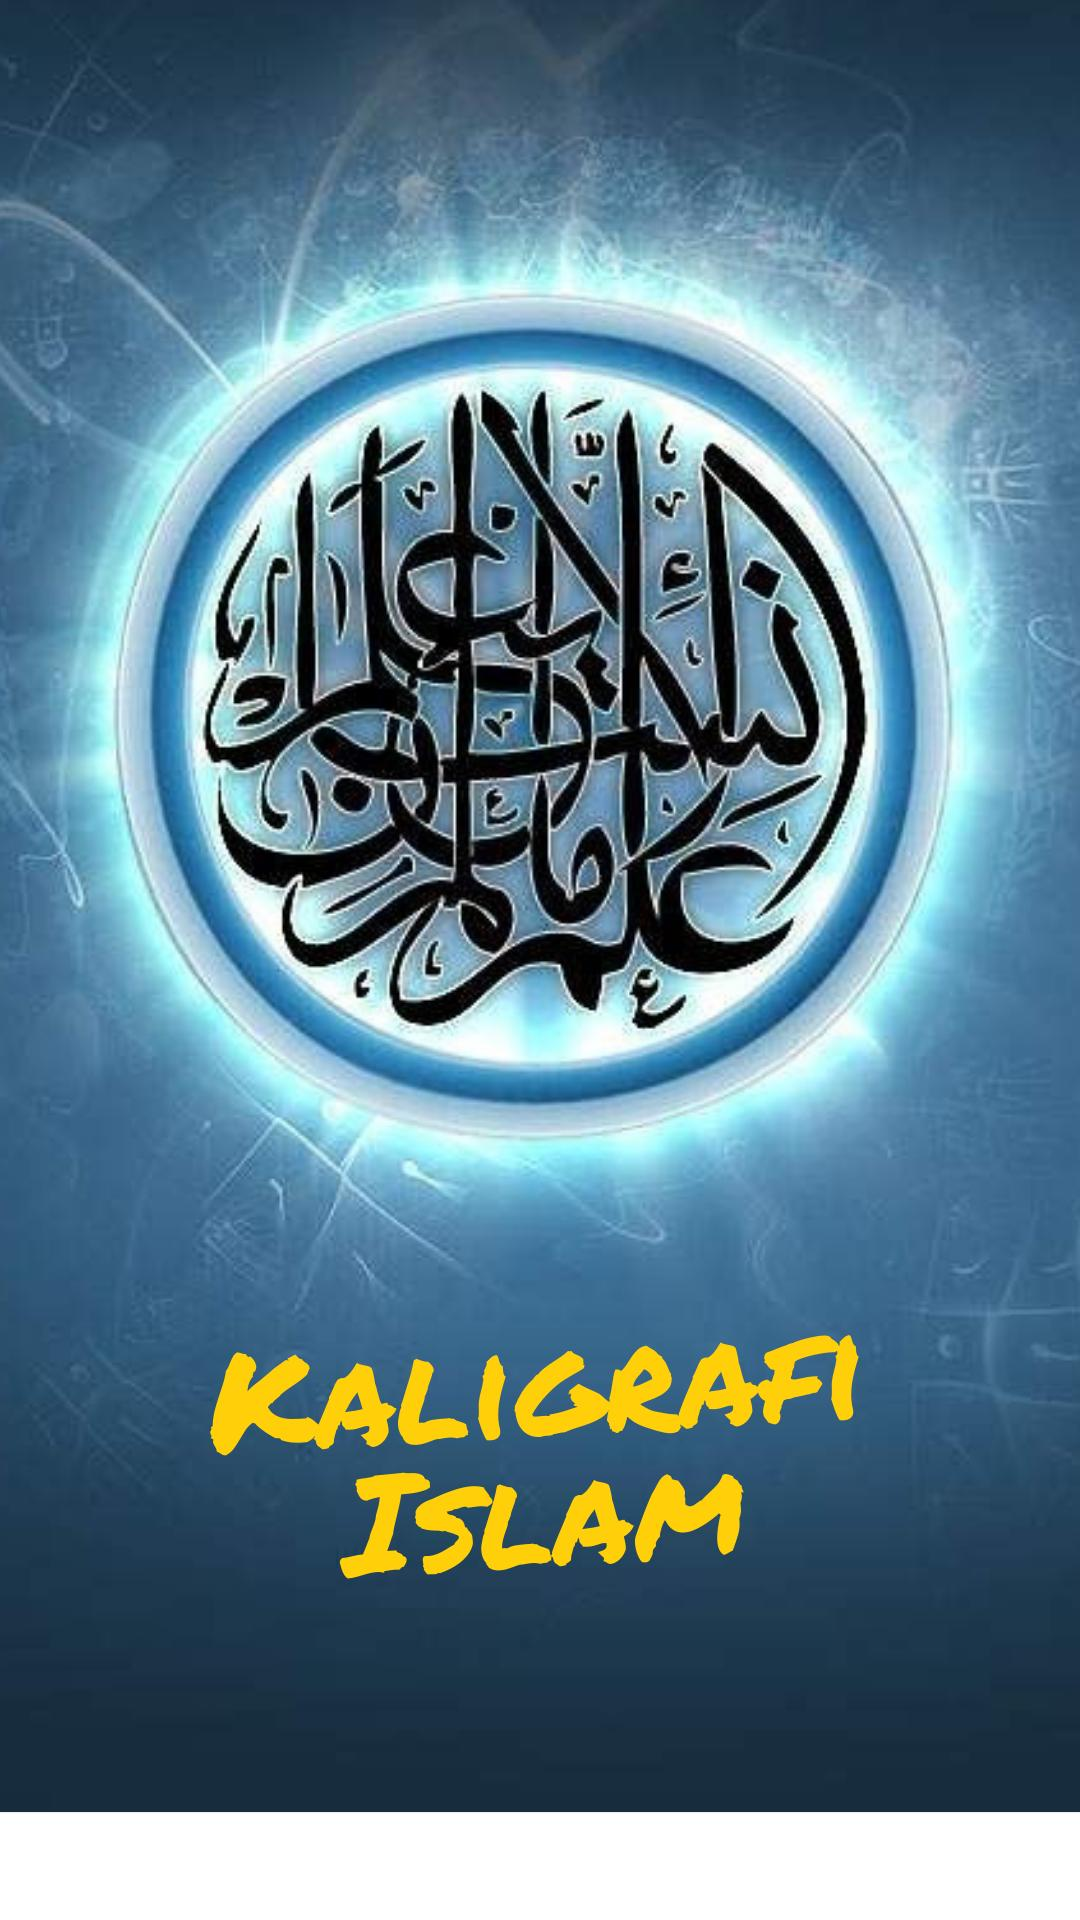 Kaligrafi Islam Allah Muhammad Wallpaper For Android Apk